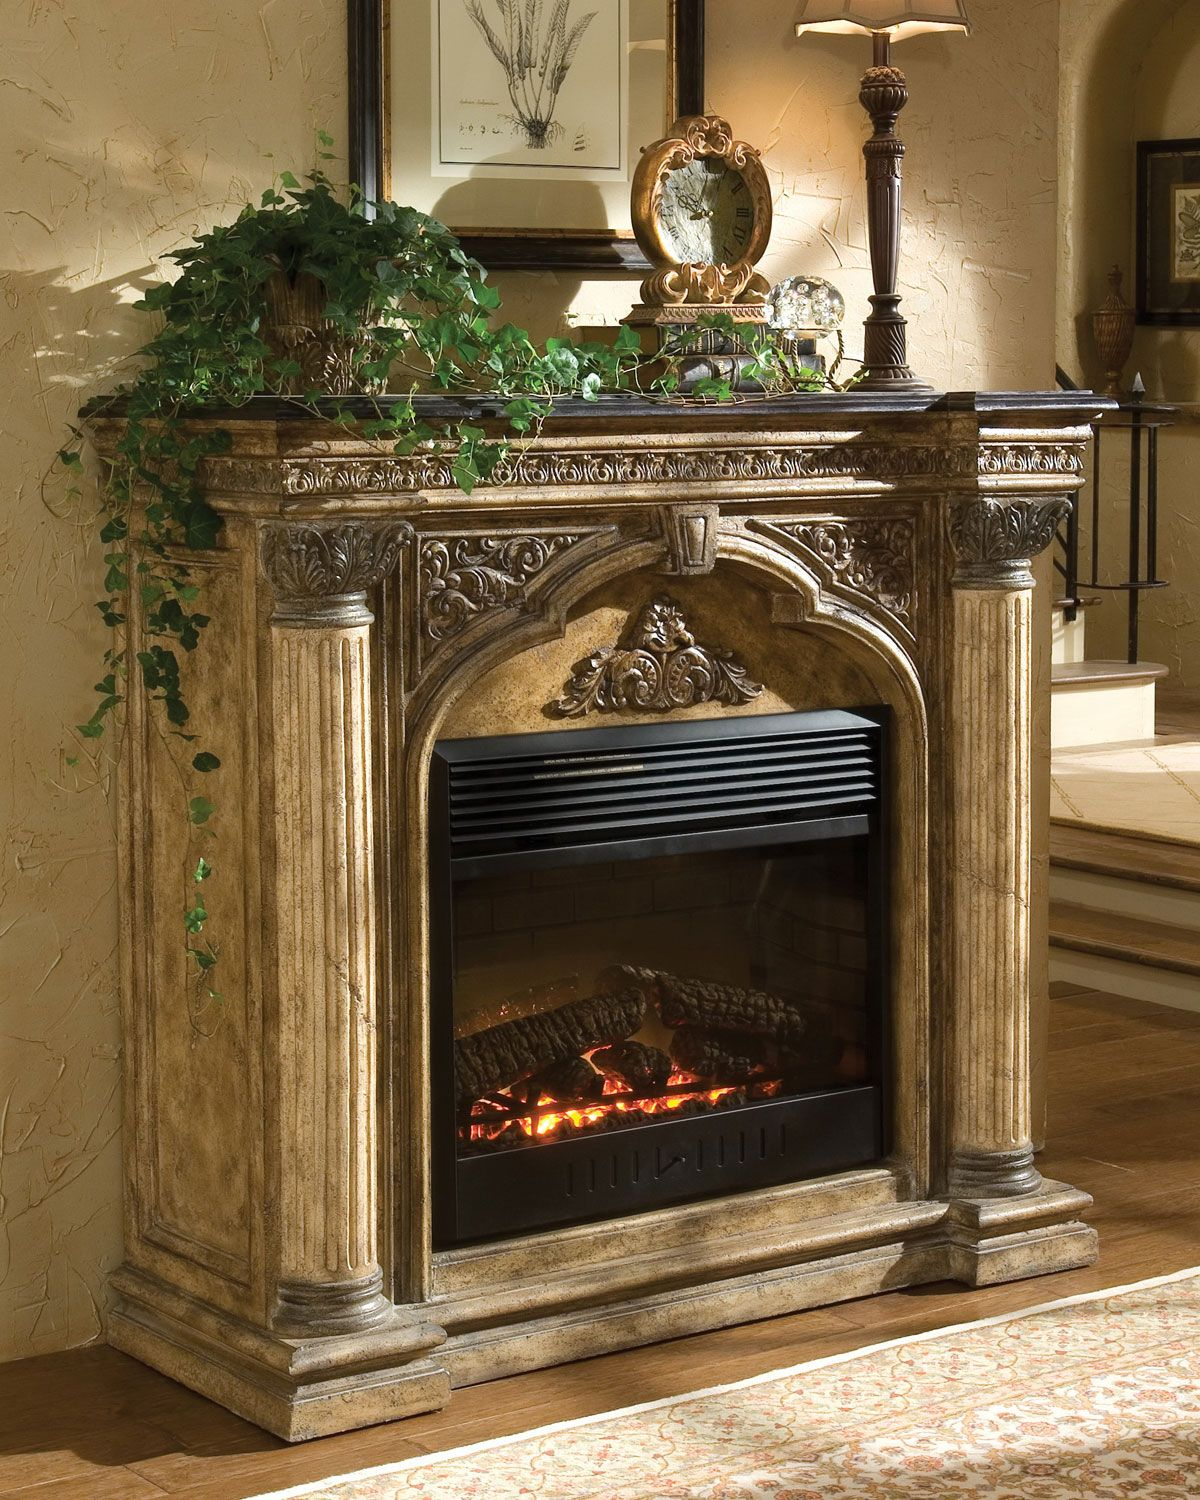 Arch Electric Fireplace | Electric fireplaces, Neiman marcus and ...